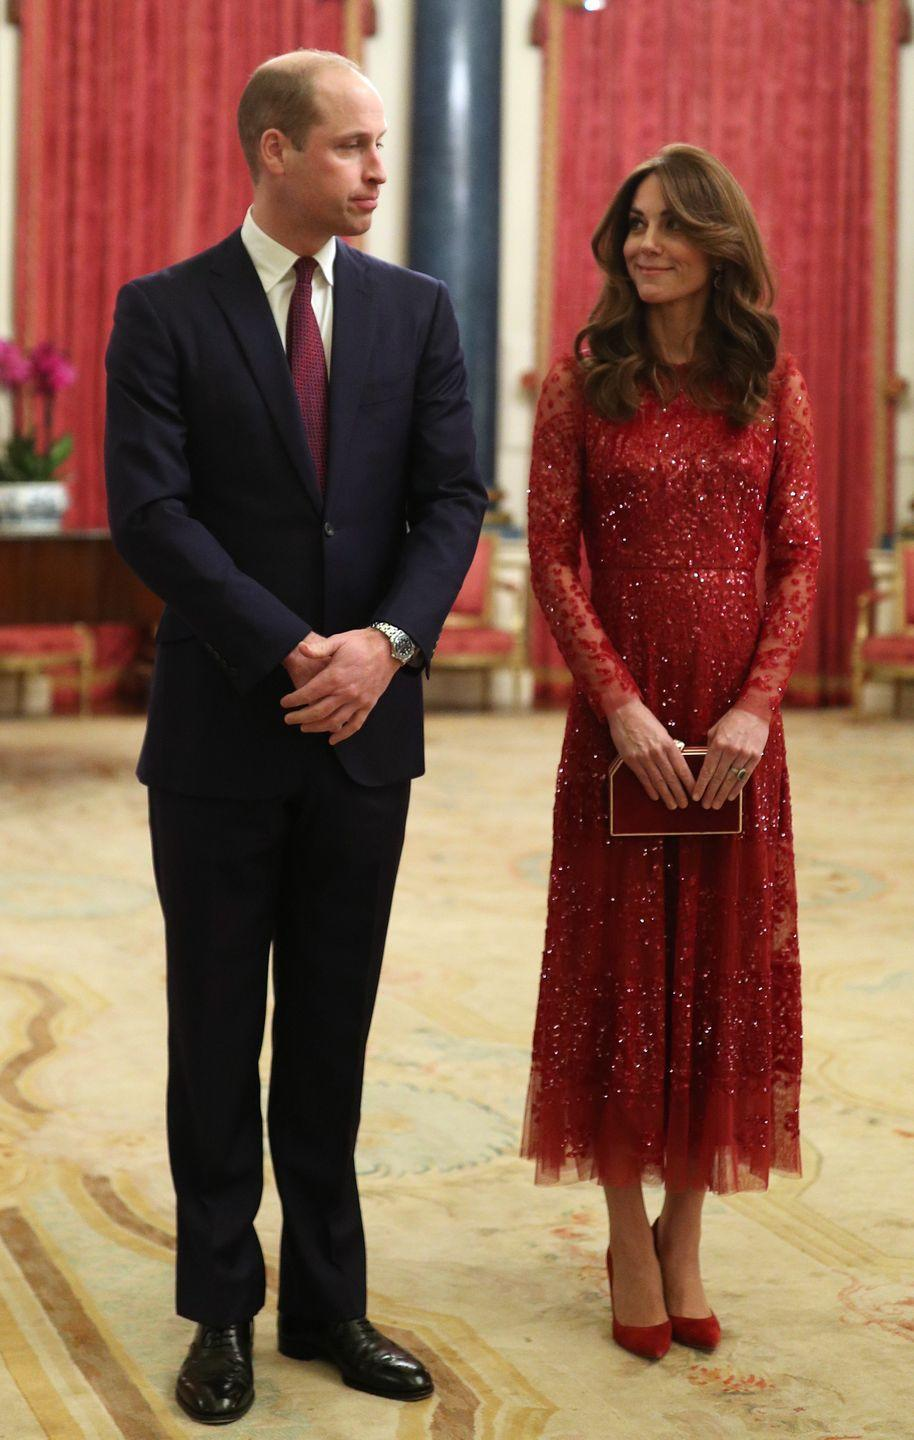 """<p>The Duchess of Cambridge attend a reception to mark the UK-Africa Investment Summit at Buckingham Palace. She wore a dress by <a href=""""https://www.net-a-porter.com/us/en/Shop/Designers/Needle_and_Thread?pn=1&npp=60&image_view=product&dScroll=0"""" rel=""""nofollow noopener"""" target=""""_blank"""" data-ylk=""""slk:Needle & Thread"""" class=""""link rapid-noclick-resp"""">Needle & Thread</a>. </p>"""